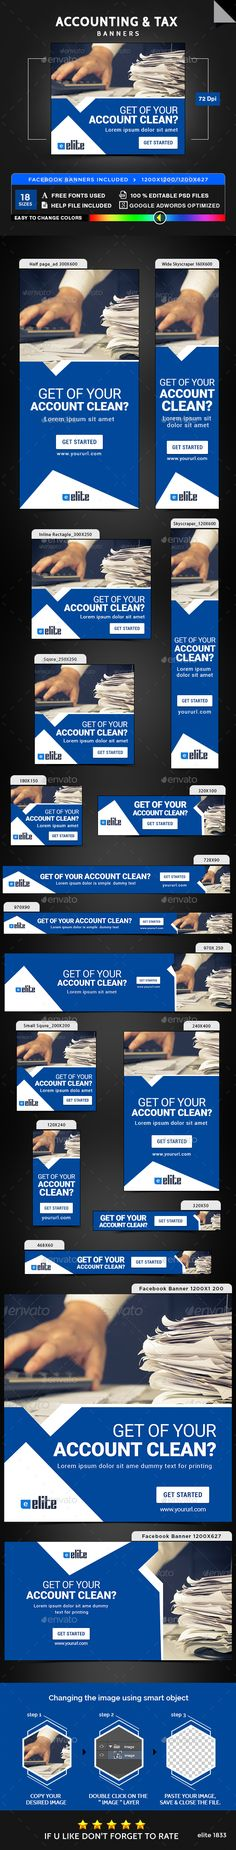 Accounting bookkeeping flyers by kinzi21 on creative market accounting tax banners banners ads web elements fandeluxe Images